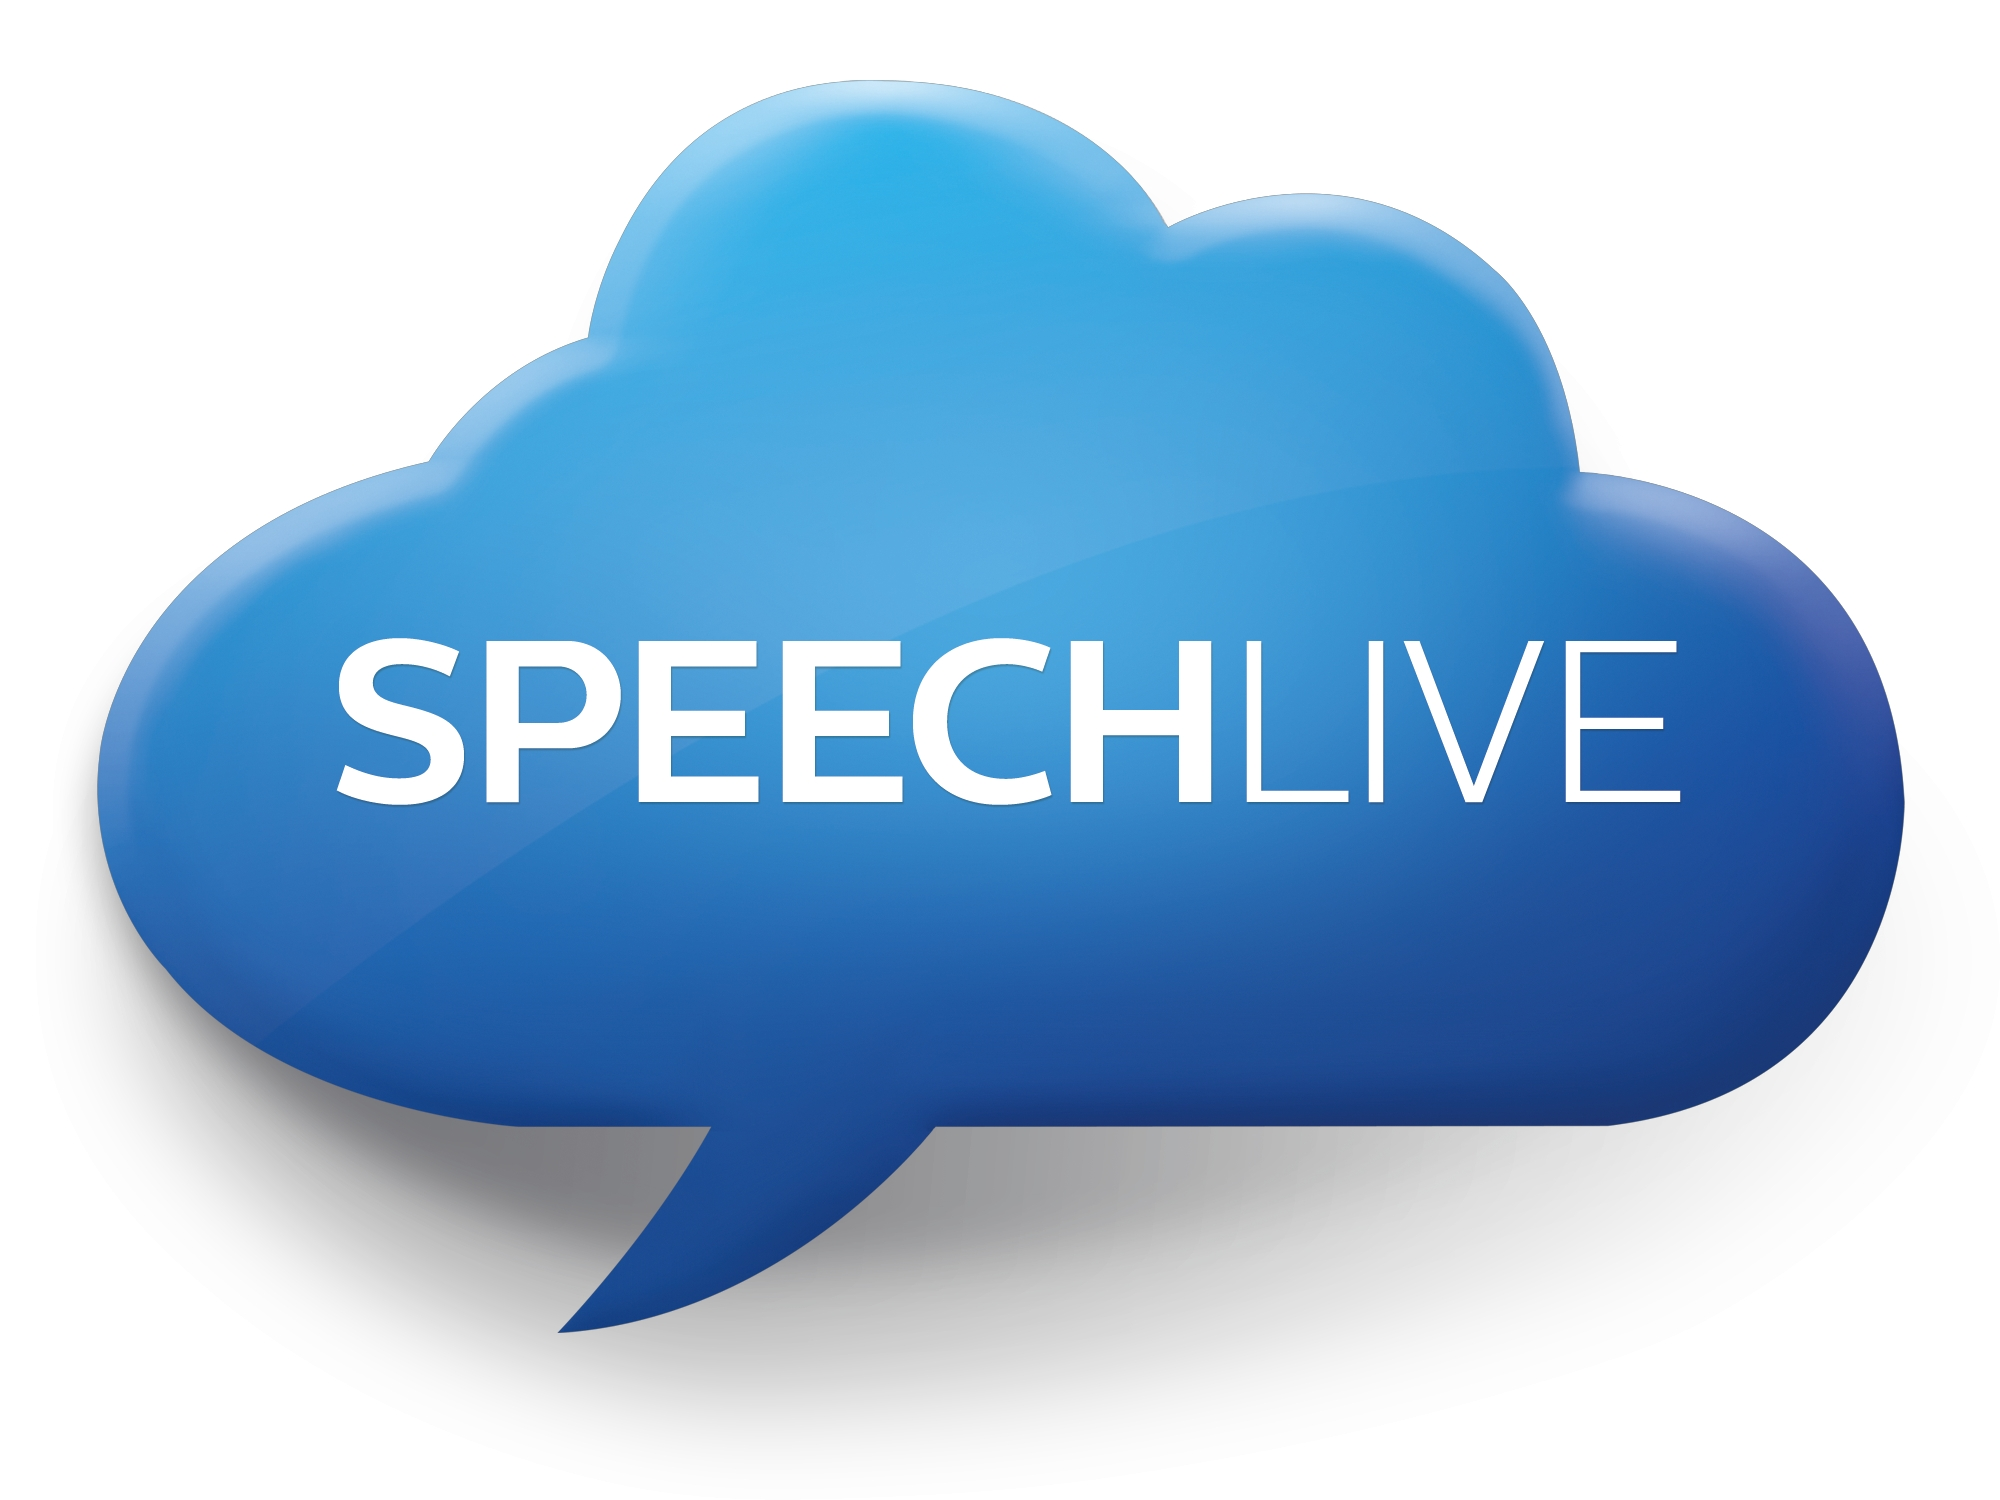 Cloud dictation system Philips SpeechLive. Browser based dictation transcription with smartphone app